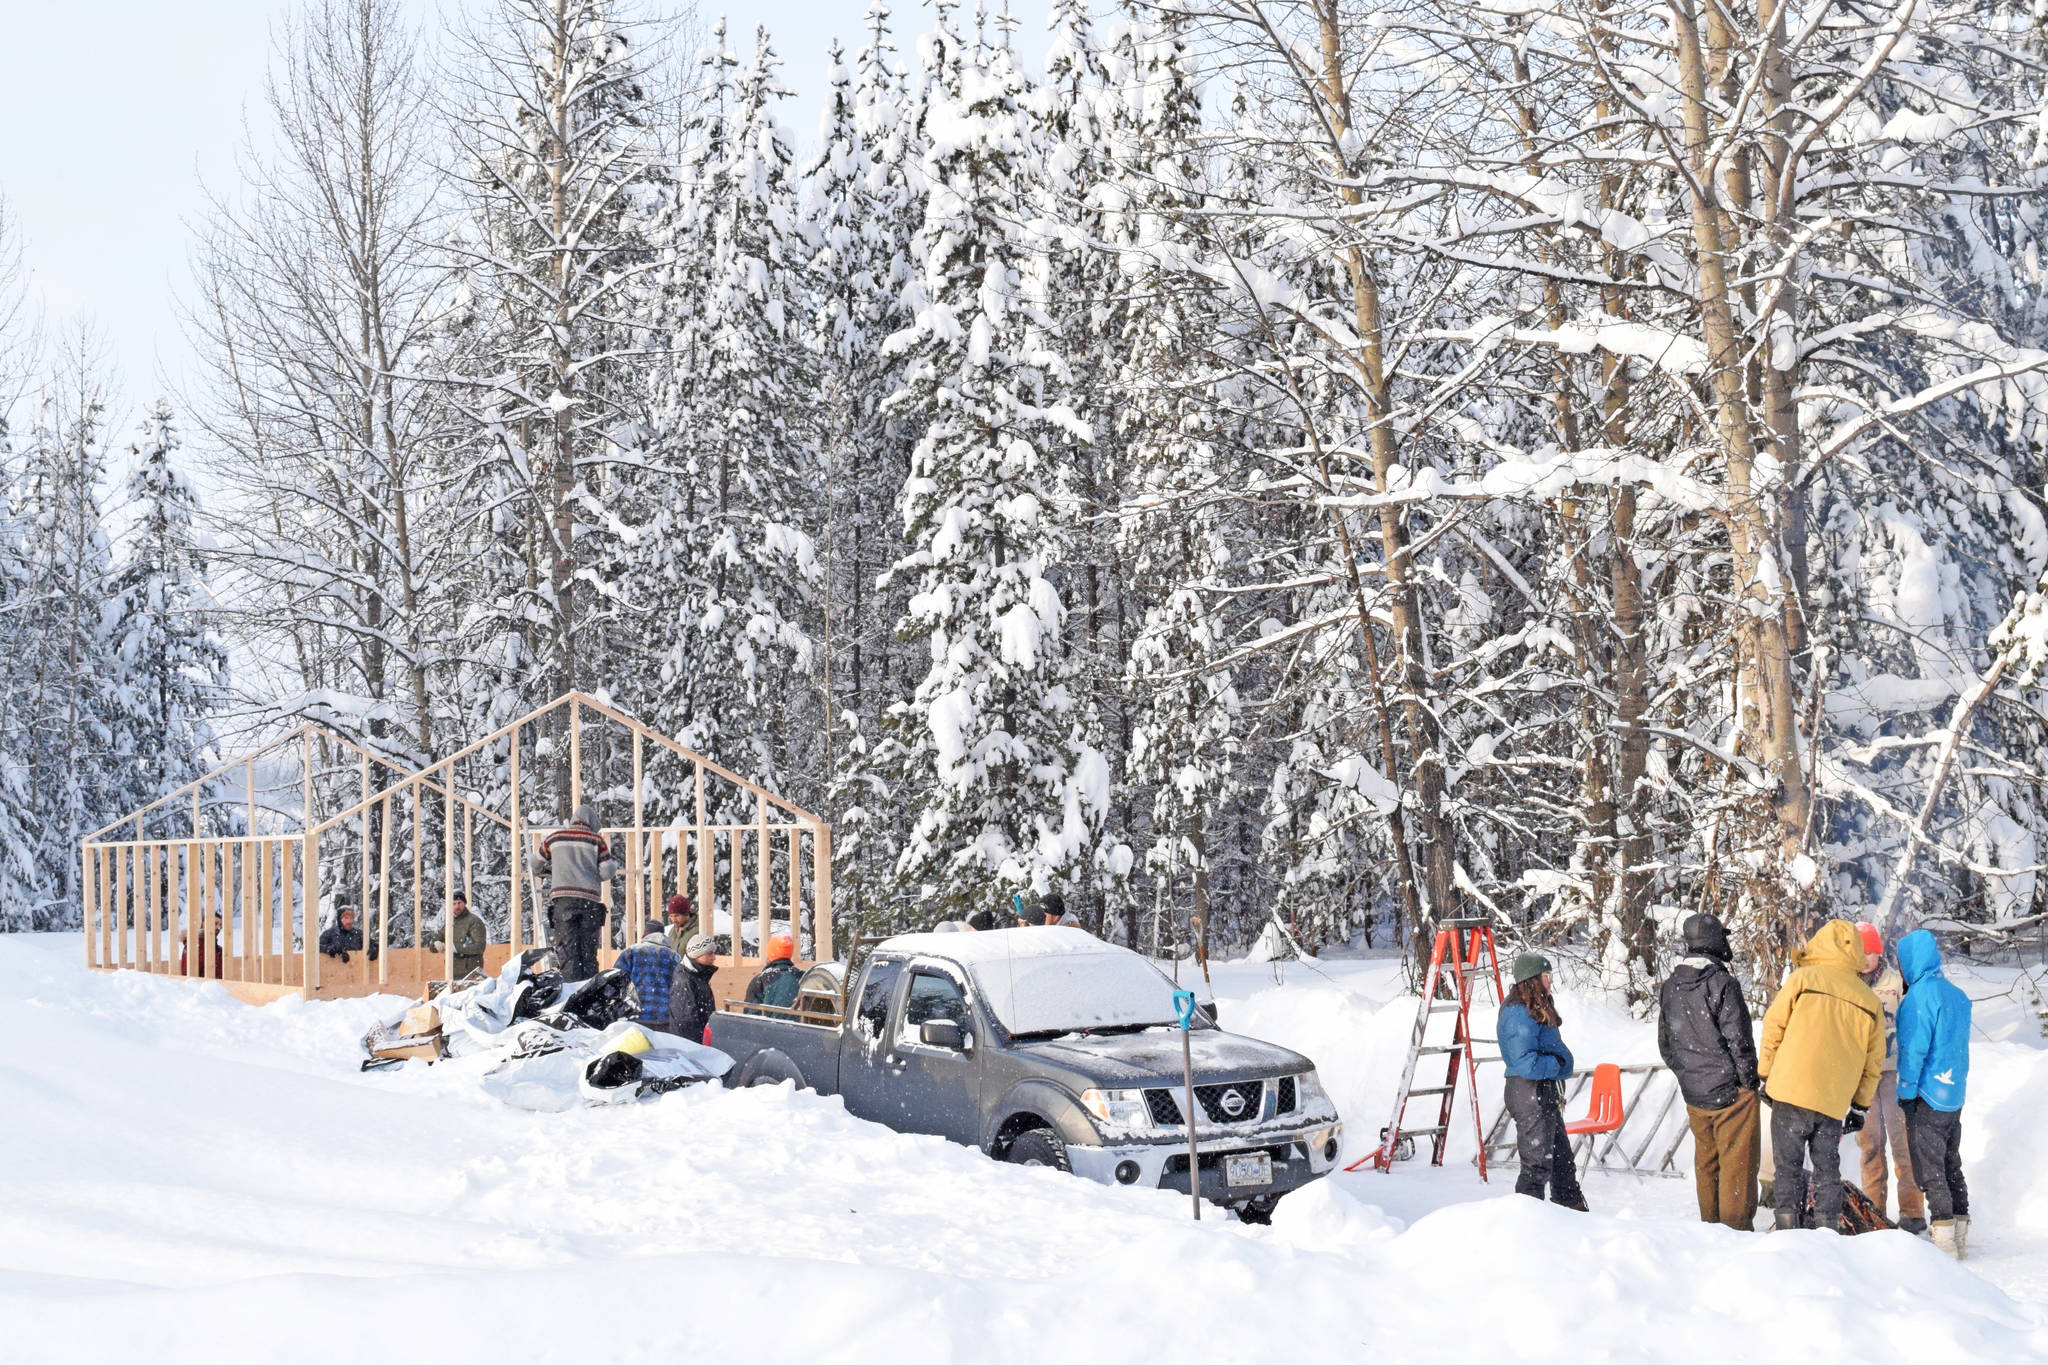 Construction of a new lodge near the 27 kilometre mark on the Morice West Forest Service Road. Wet'suwet'en supporters are currently gathered there anticipating enforcement of a B.C. Supreme Court injunction granting Coastal GasLink access to the company's nearby pipeline worksite. (Trevor Hewitt photo)